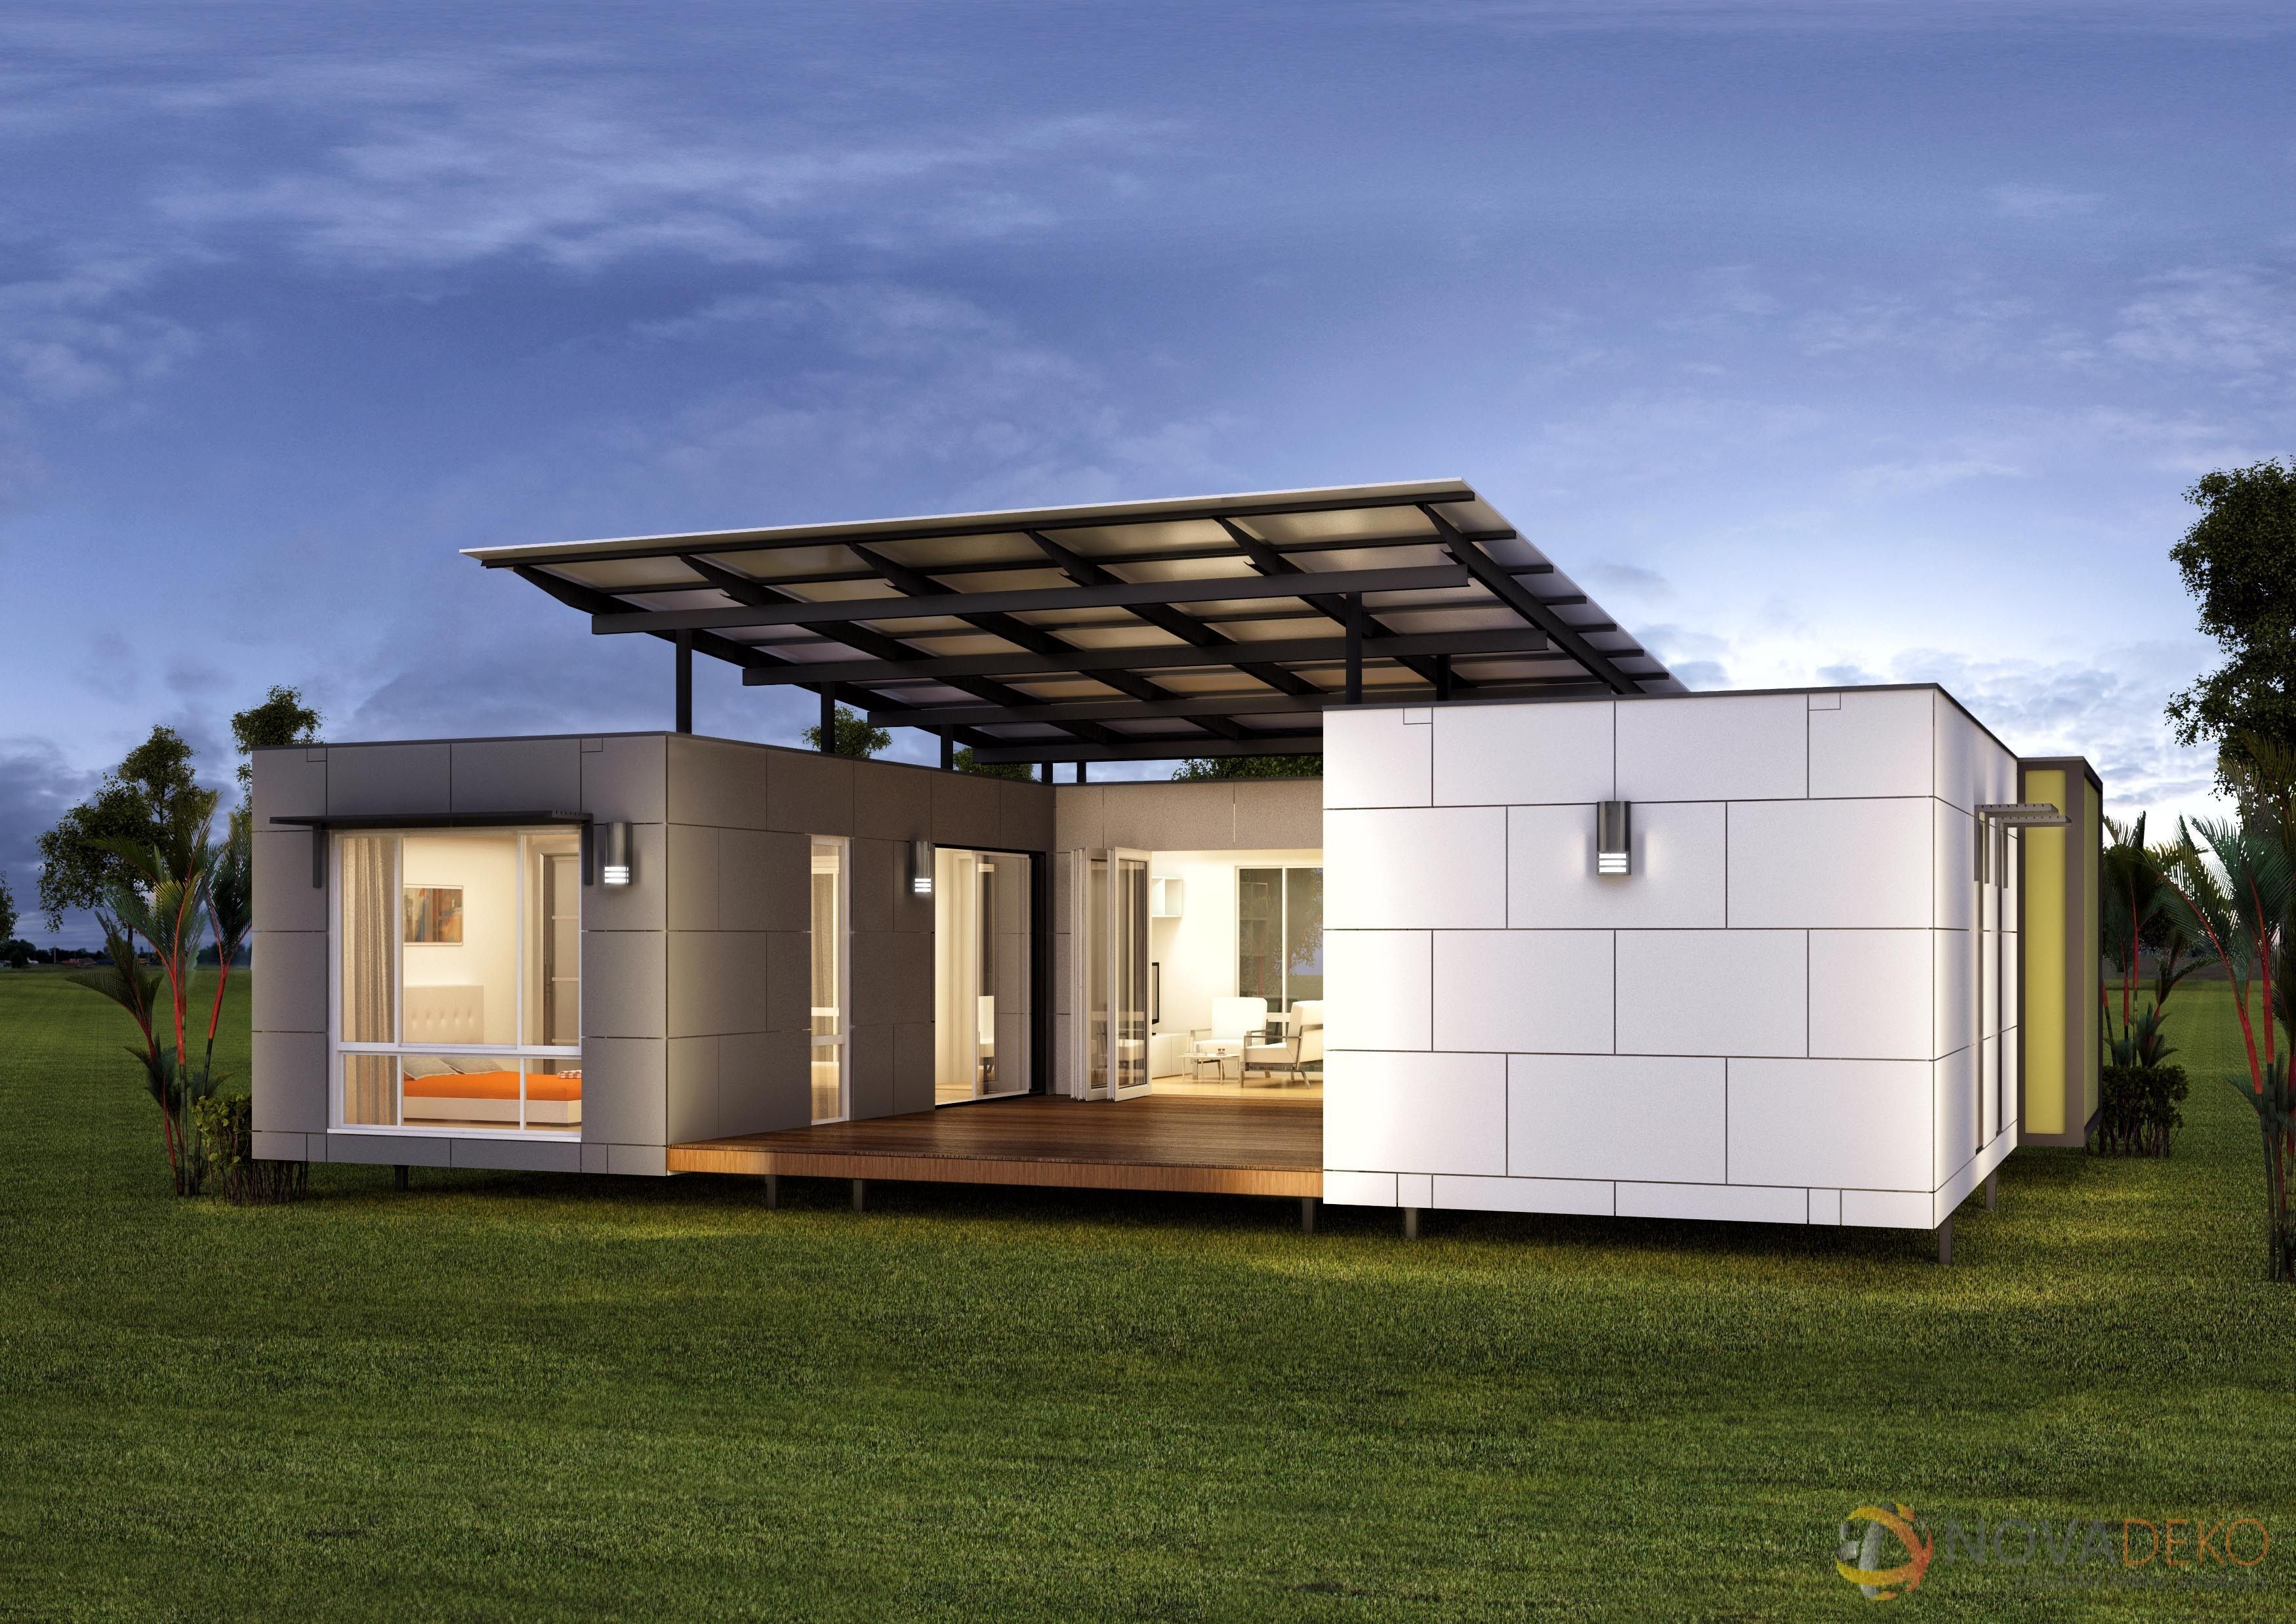 Shipping container houses cost of shipping container homes california